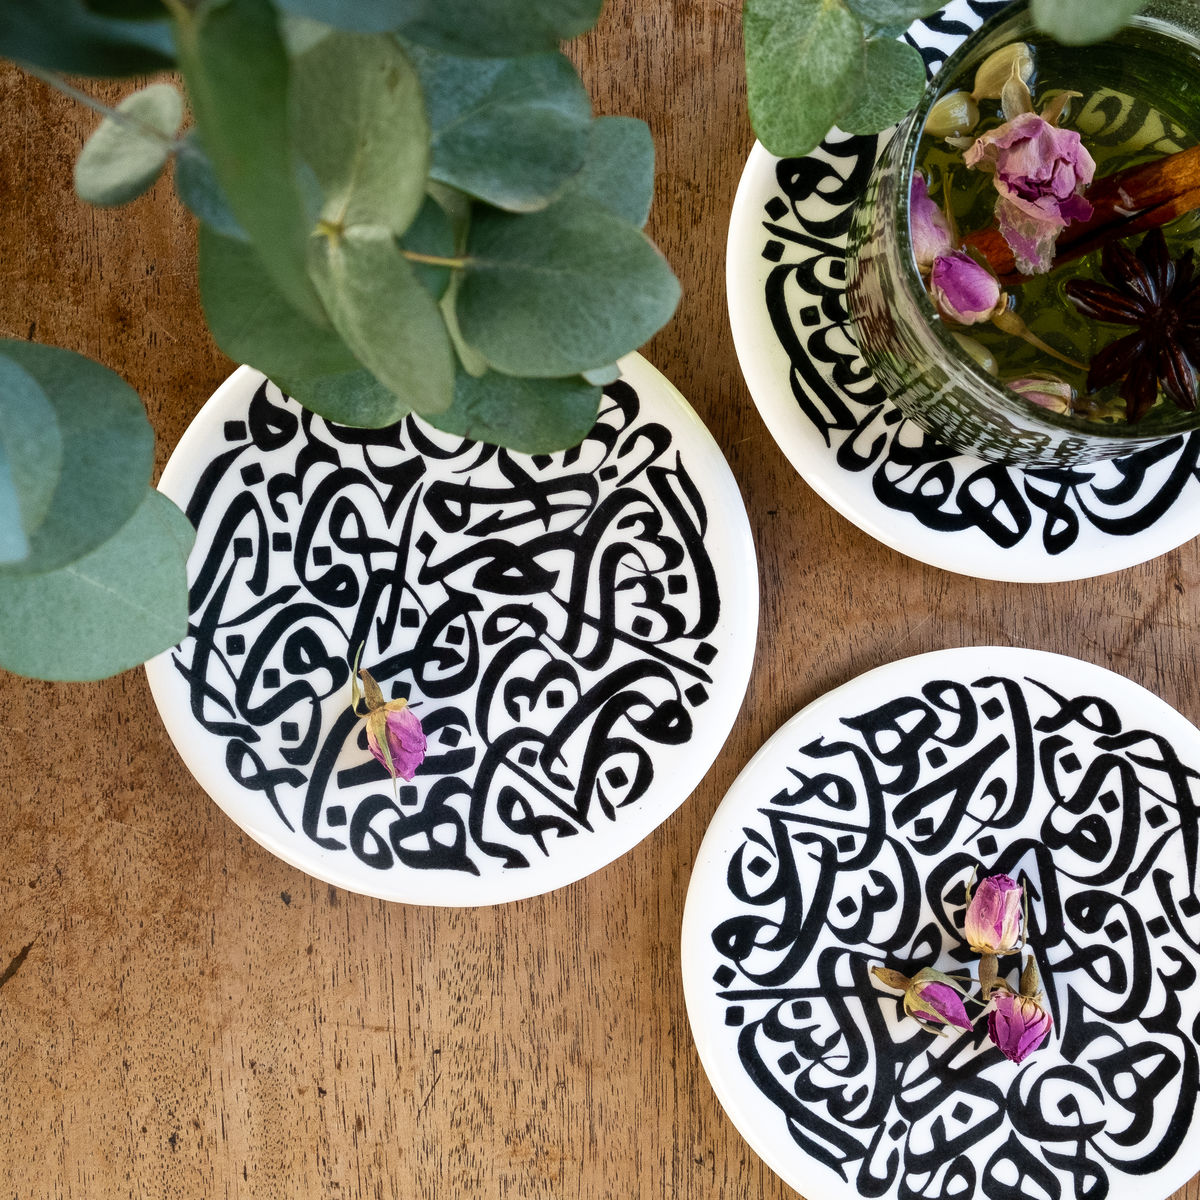 Arabic calligraphy art - coaster / plate - Letters -  by artist calligrapher Ahmad Zoabi - product images  of